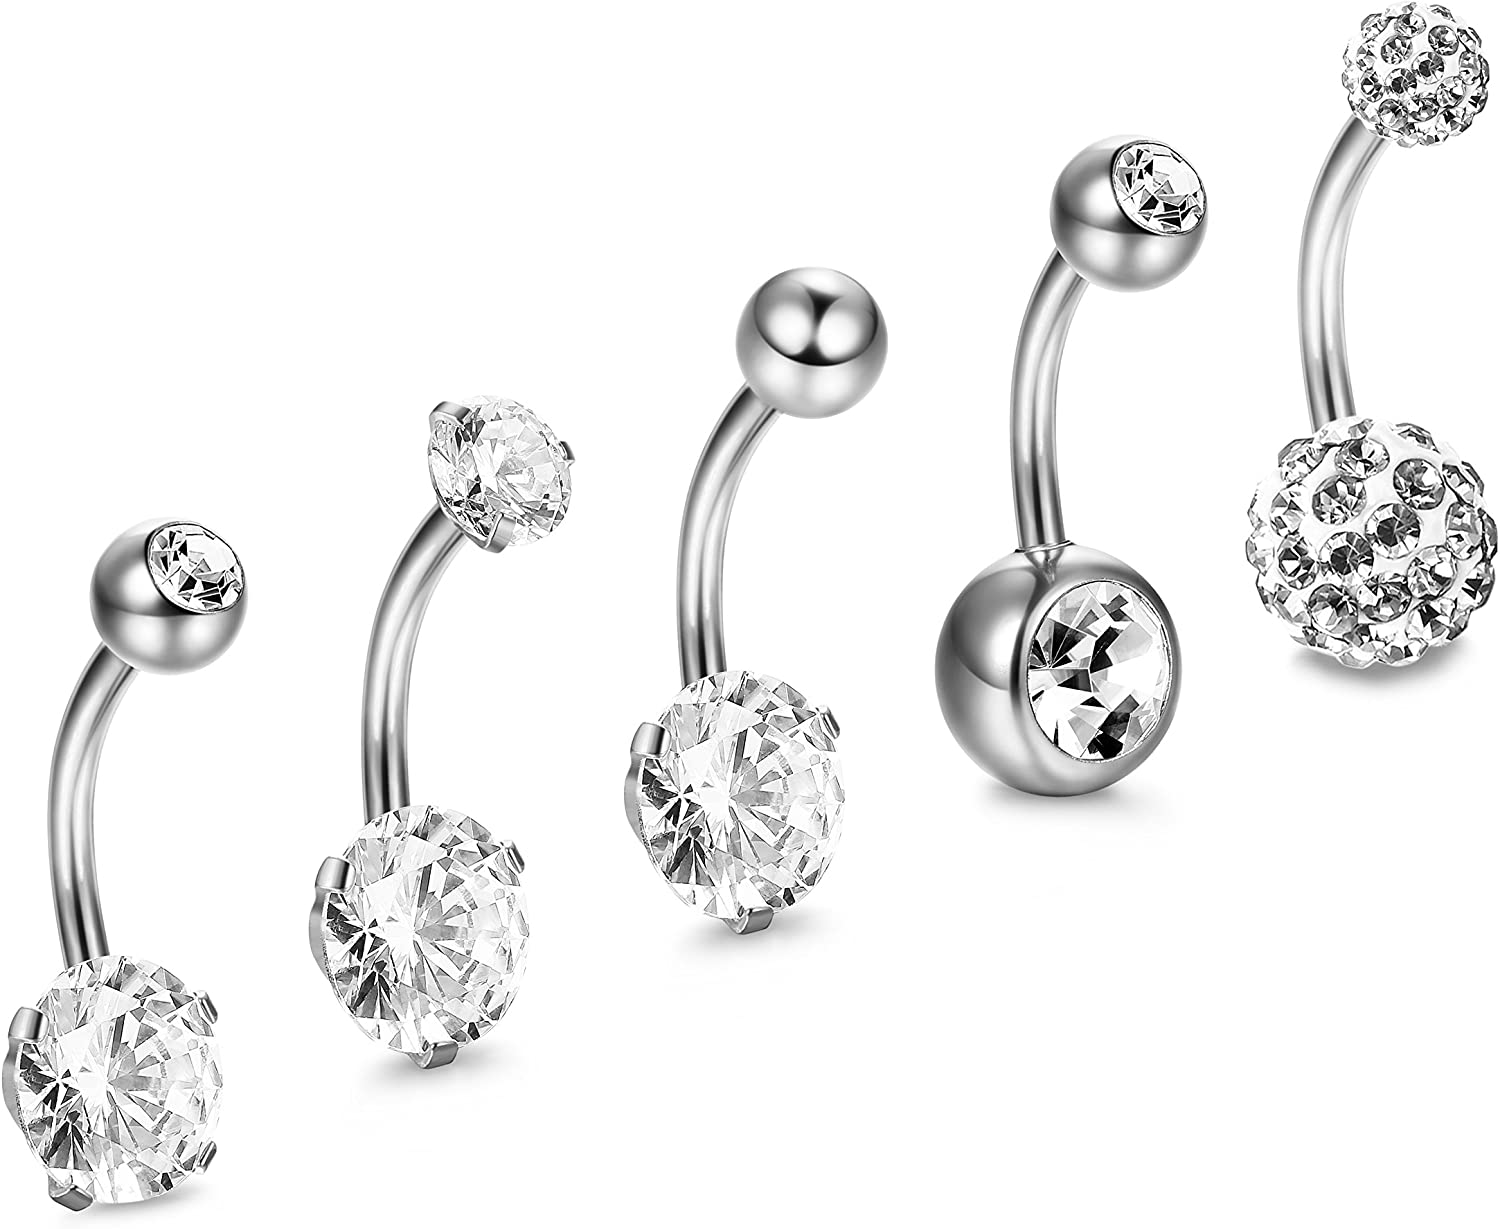 16Pcs Belly Button Rings for Women Screw Navel Barbell Studs Body Jewelry